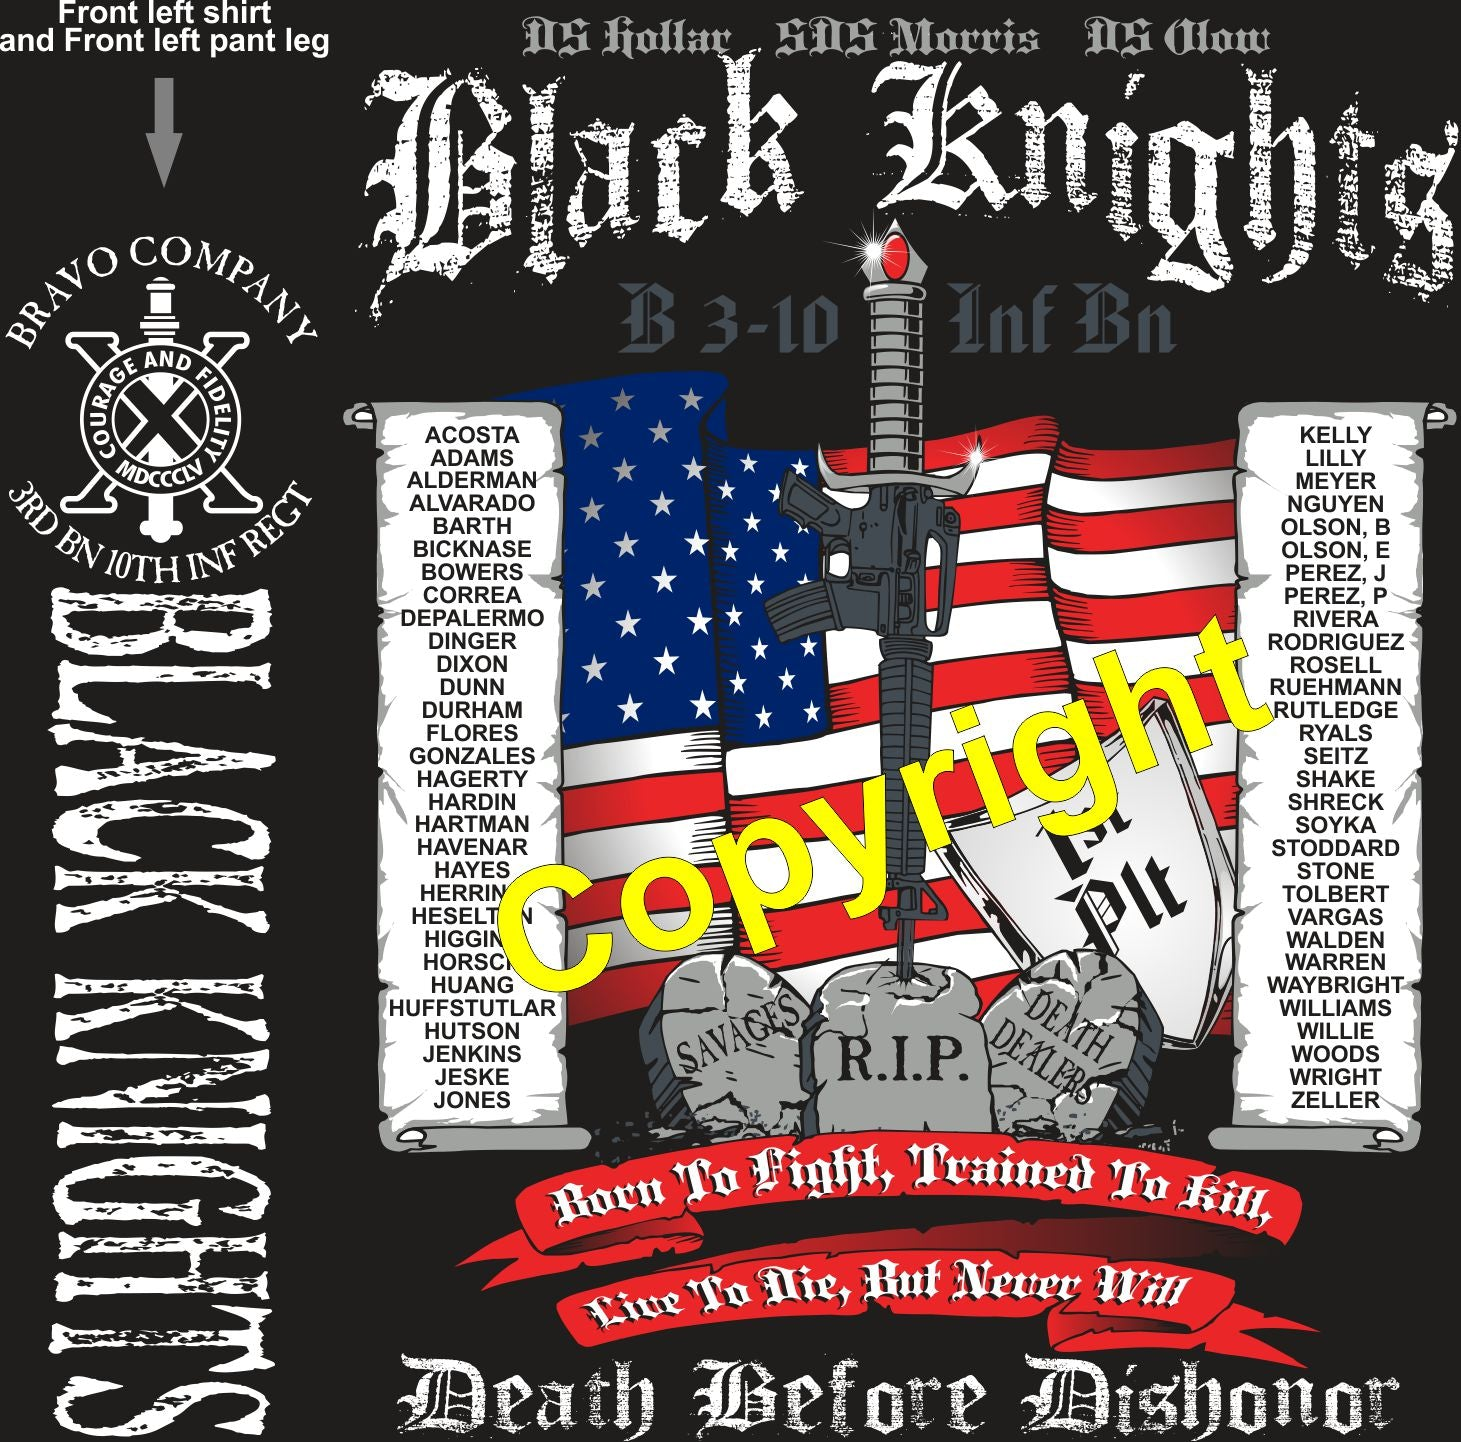 BRAVO 310 BLACK KNIGHTS GRADUATING DAY 3-14-2019 digital